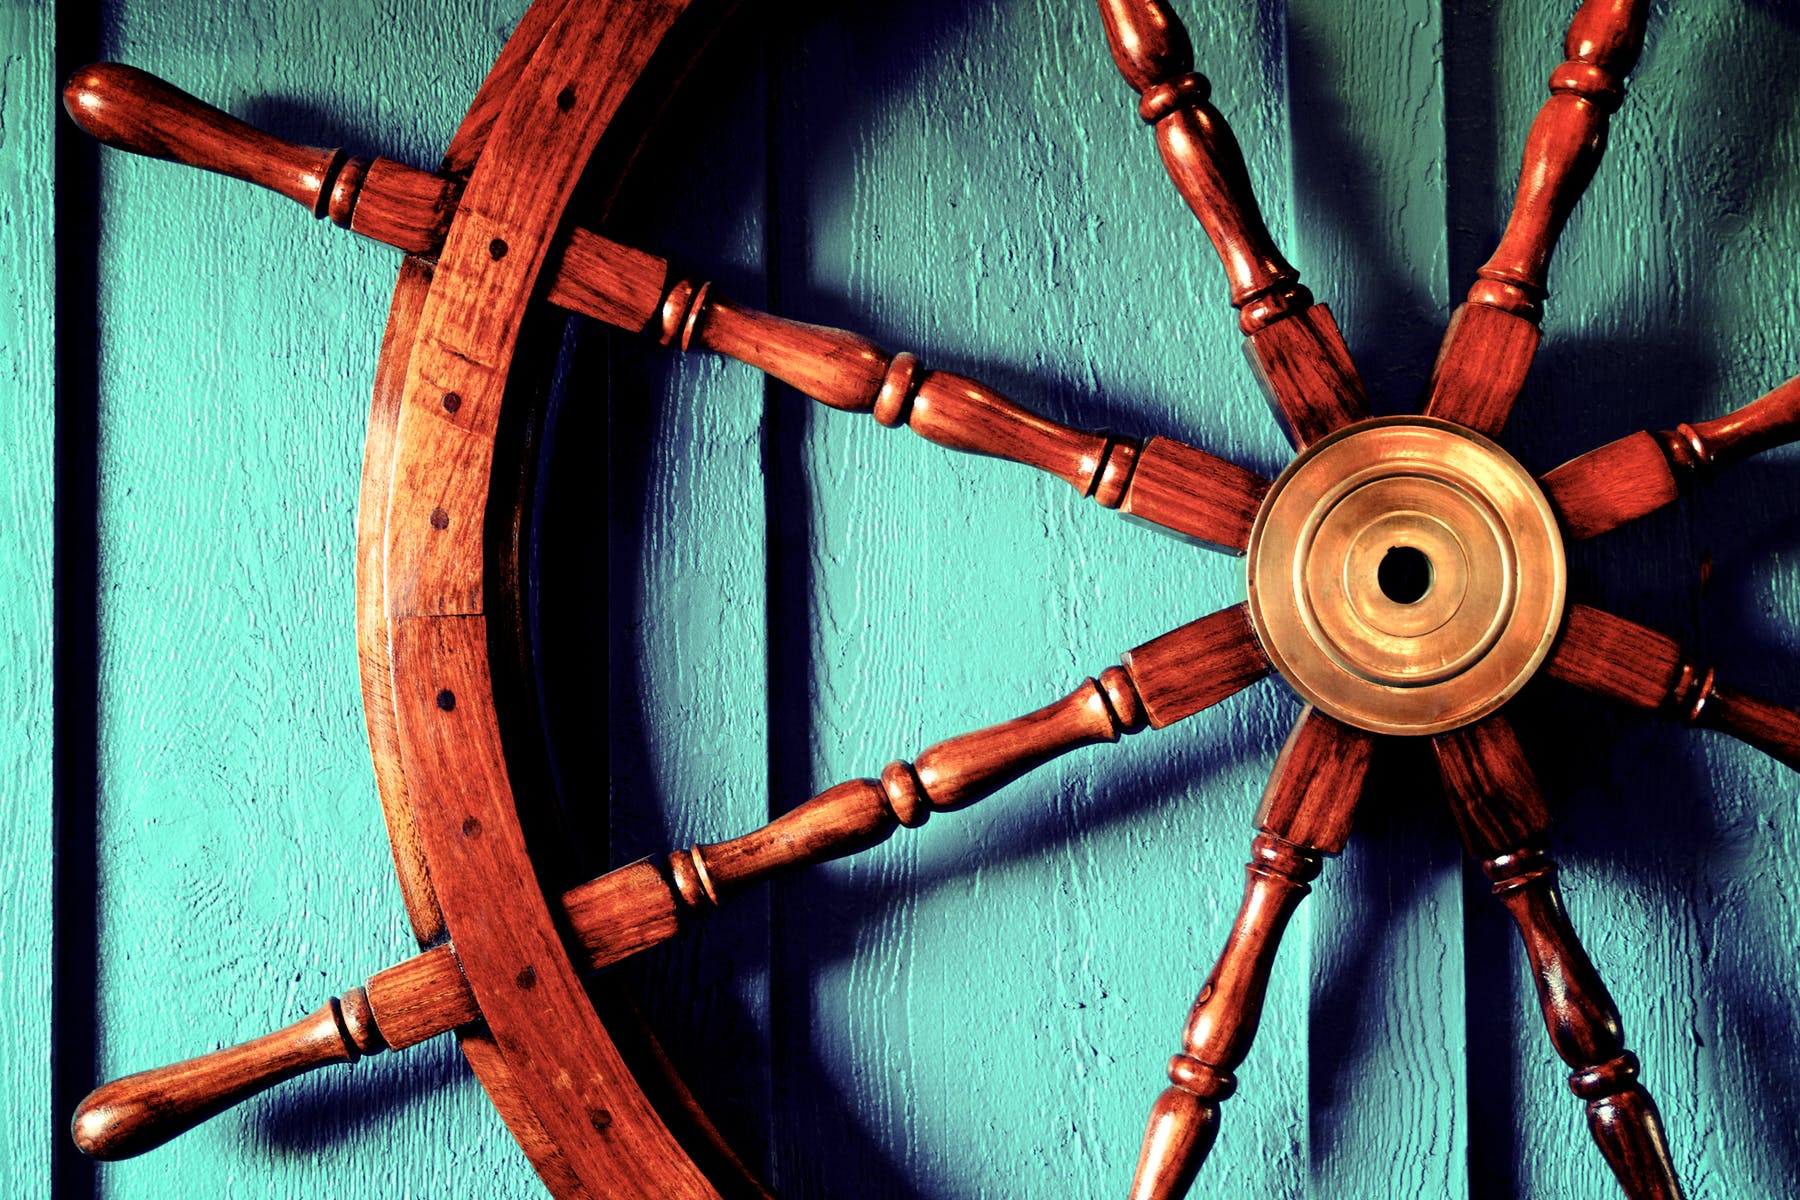 a closeup of a boat's wooden steering wheel